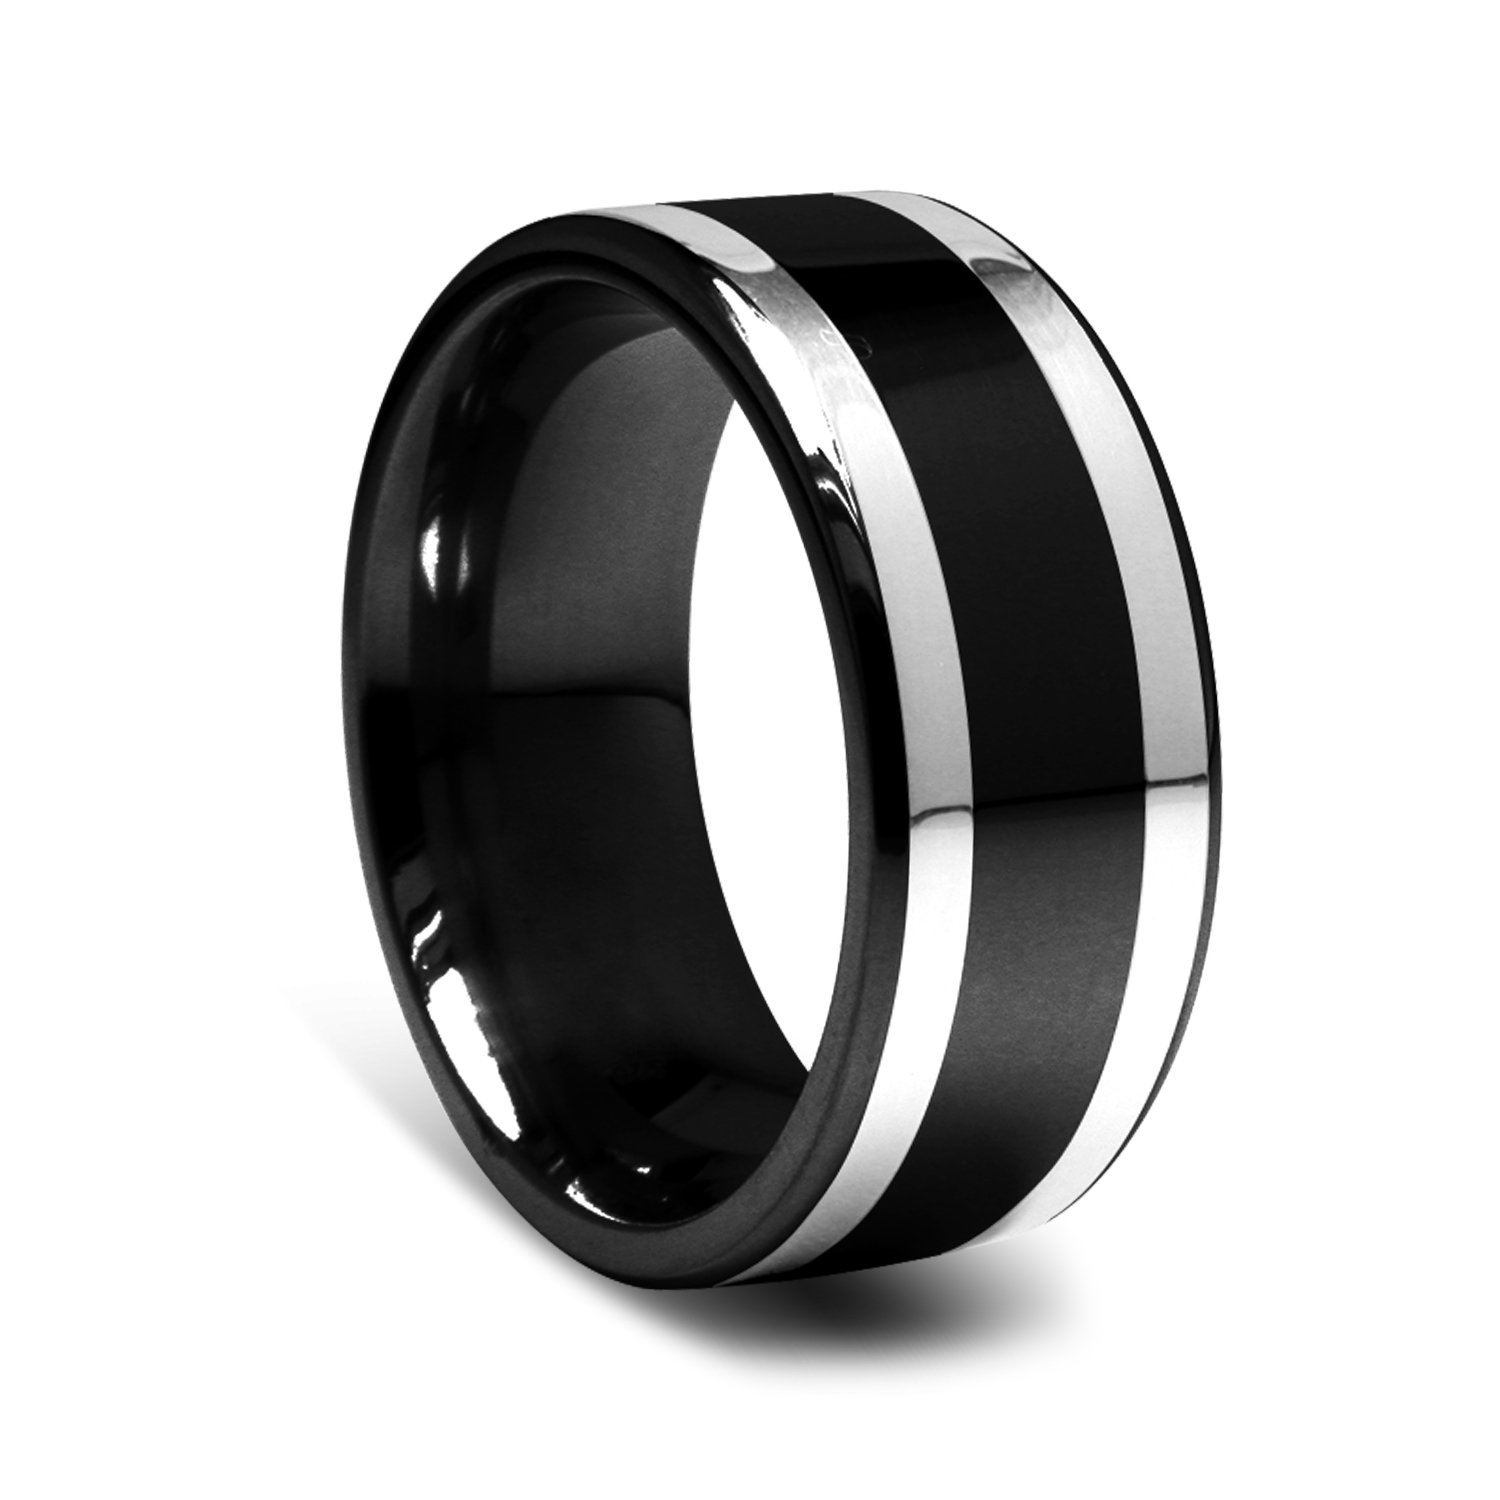 ngagement rings finger mens engagement rings black. Black Bedroom Furniture Sets. Home Design Ideas